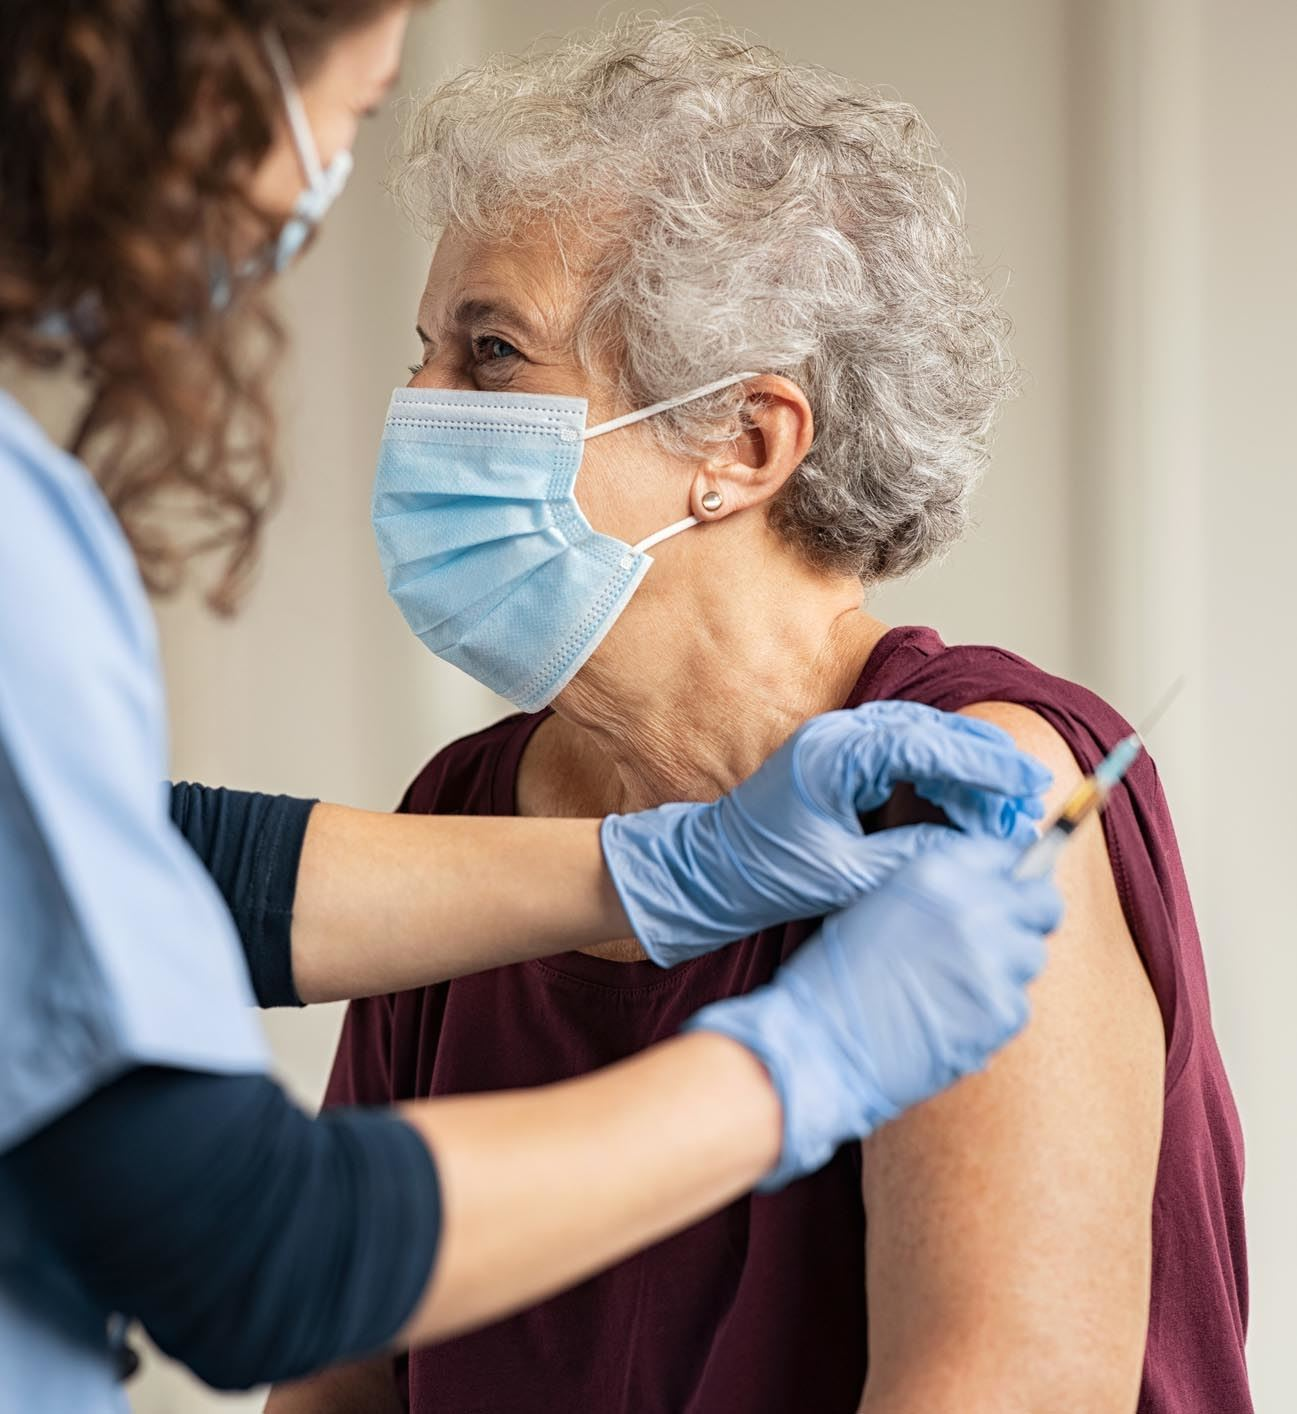 Doctor administering vaccine to elderly woman